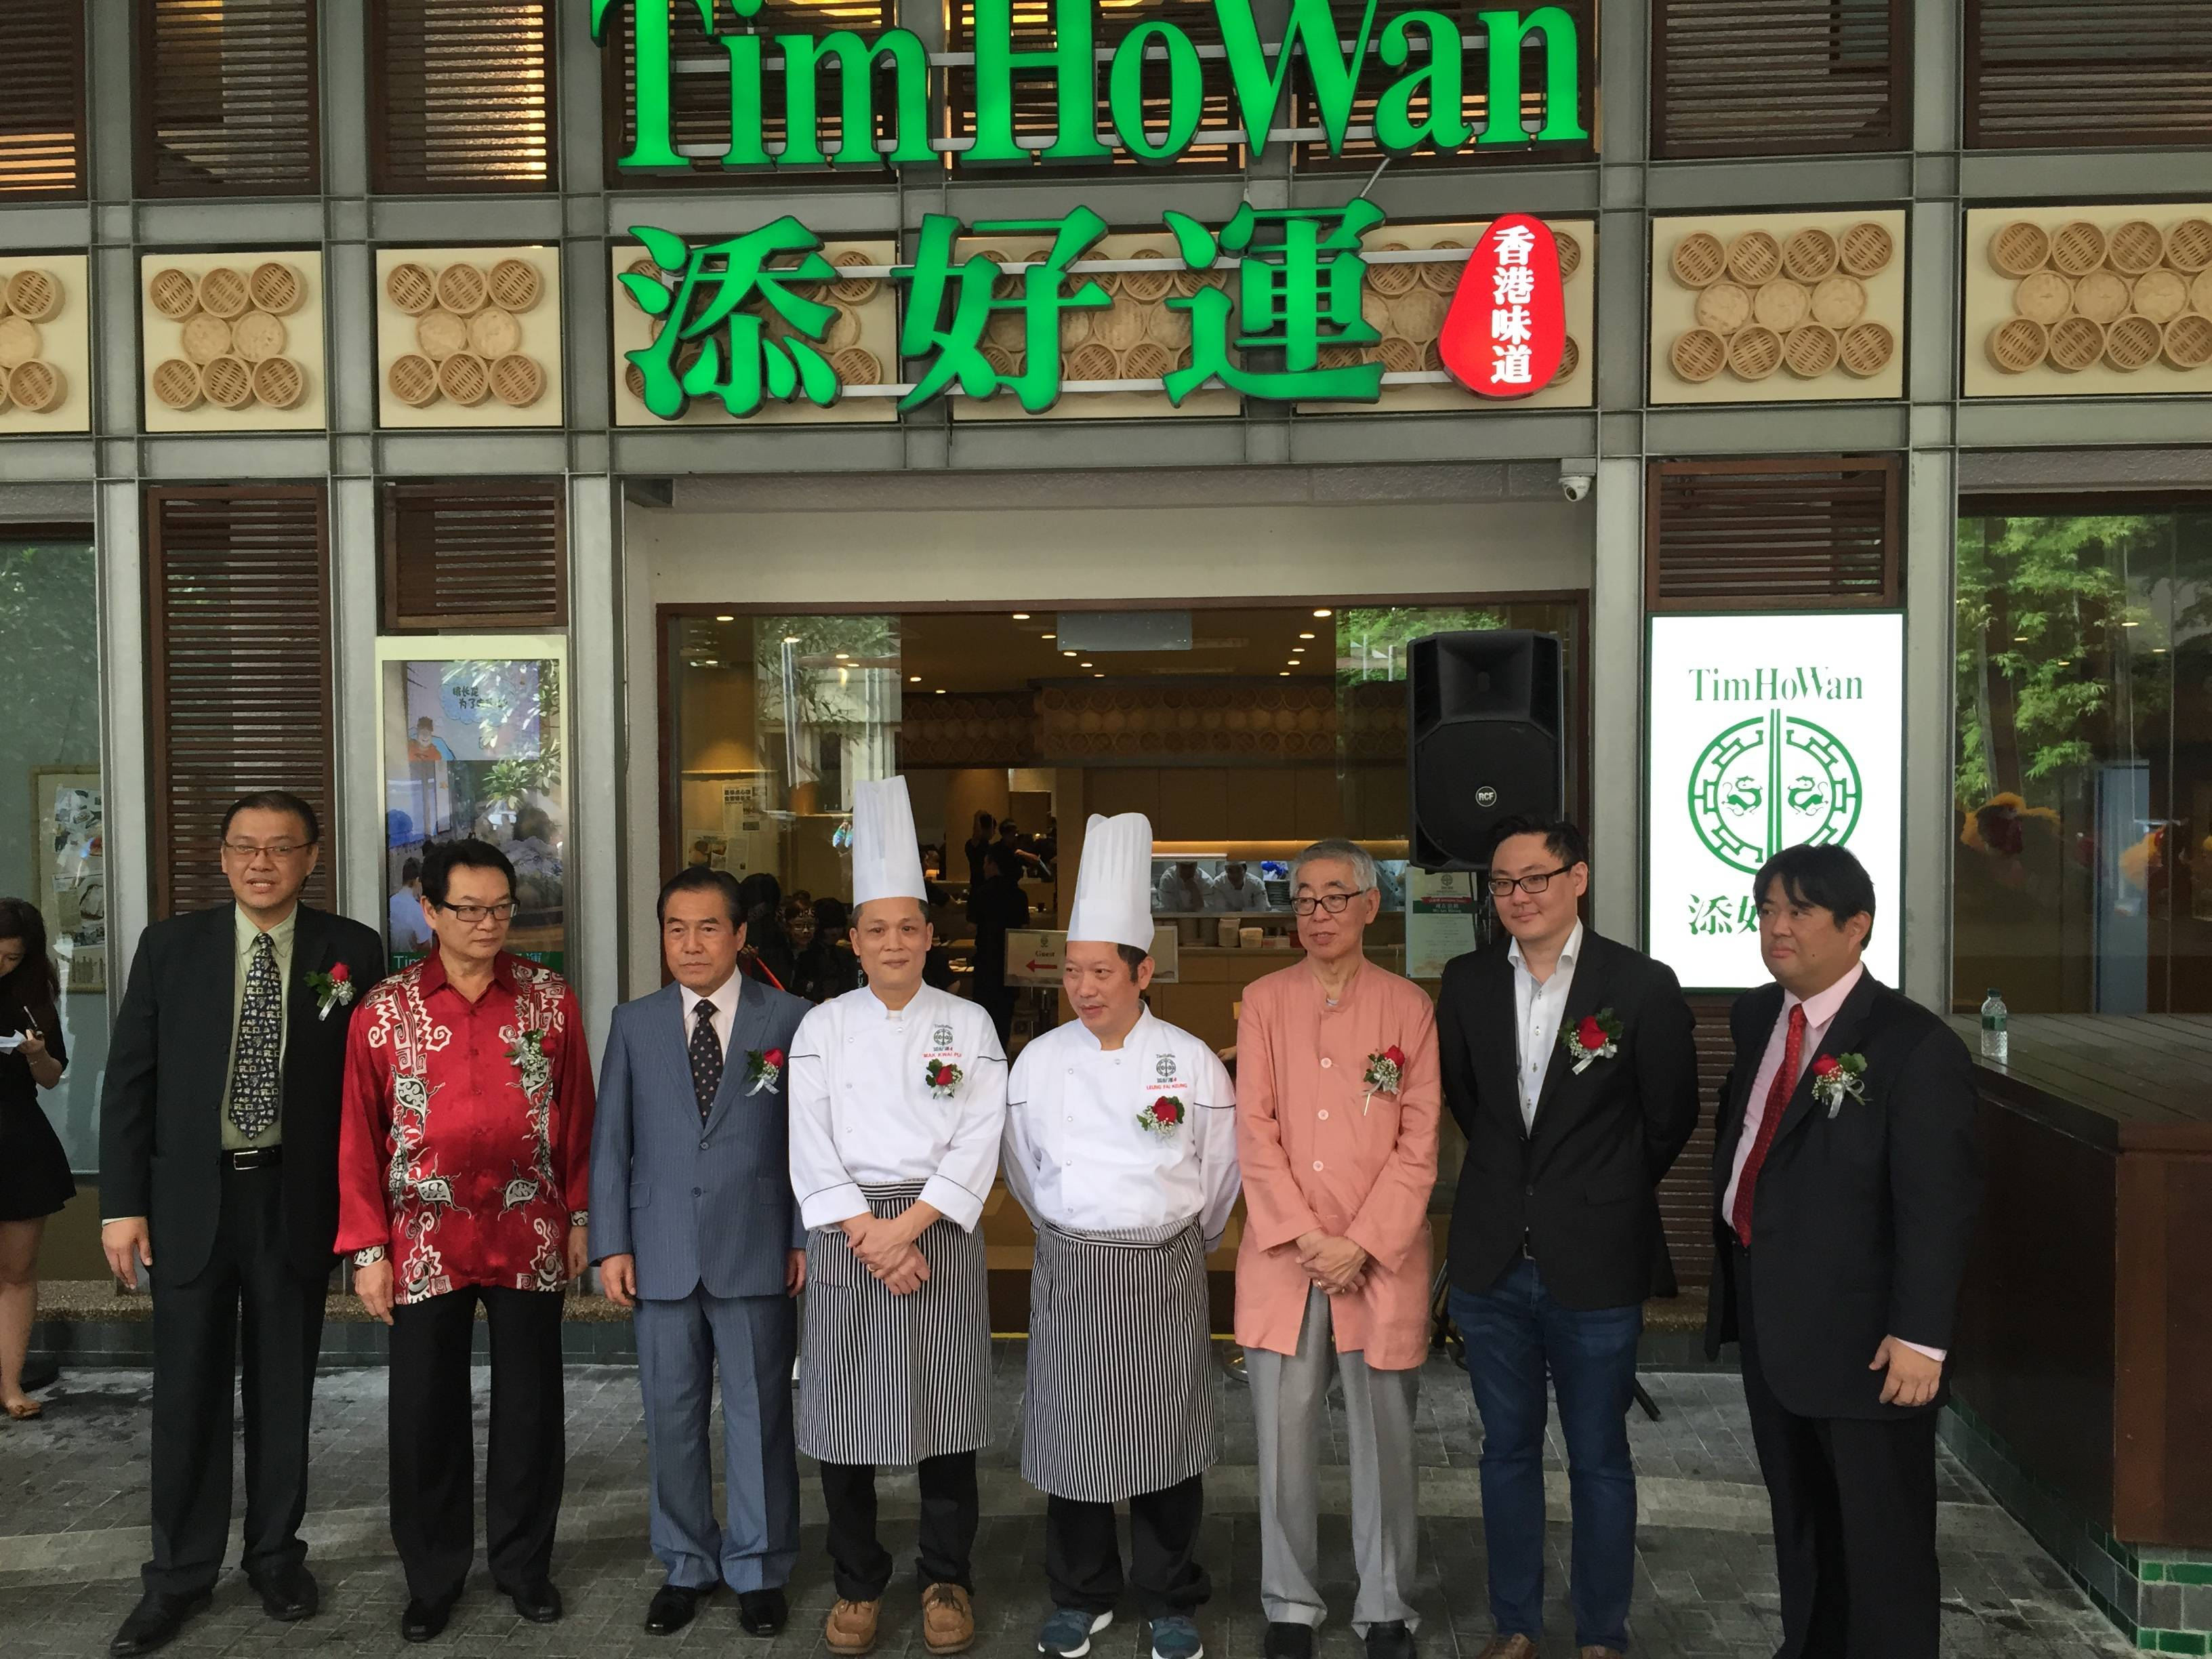 Founder of Tim Ho Wan, Chef Mak Kwai Pui (fifth from right) at the opening of Tim Ho Wan's first outlet in Malaysia